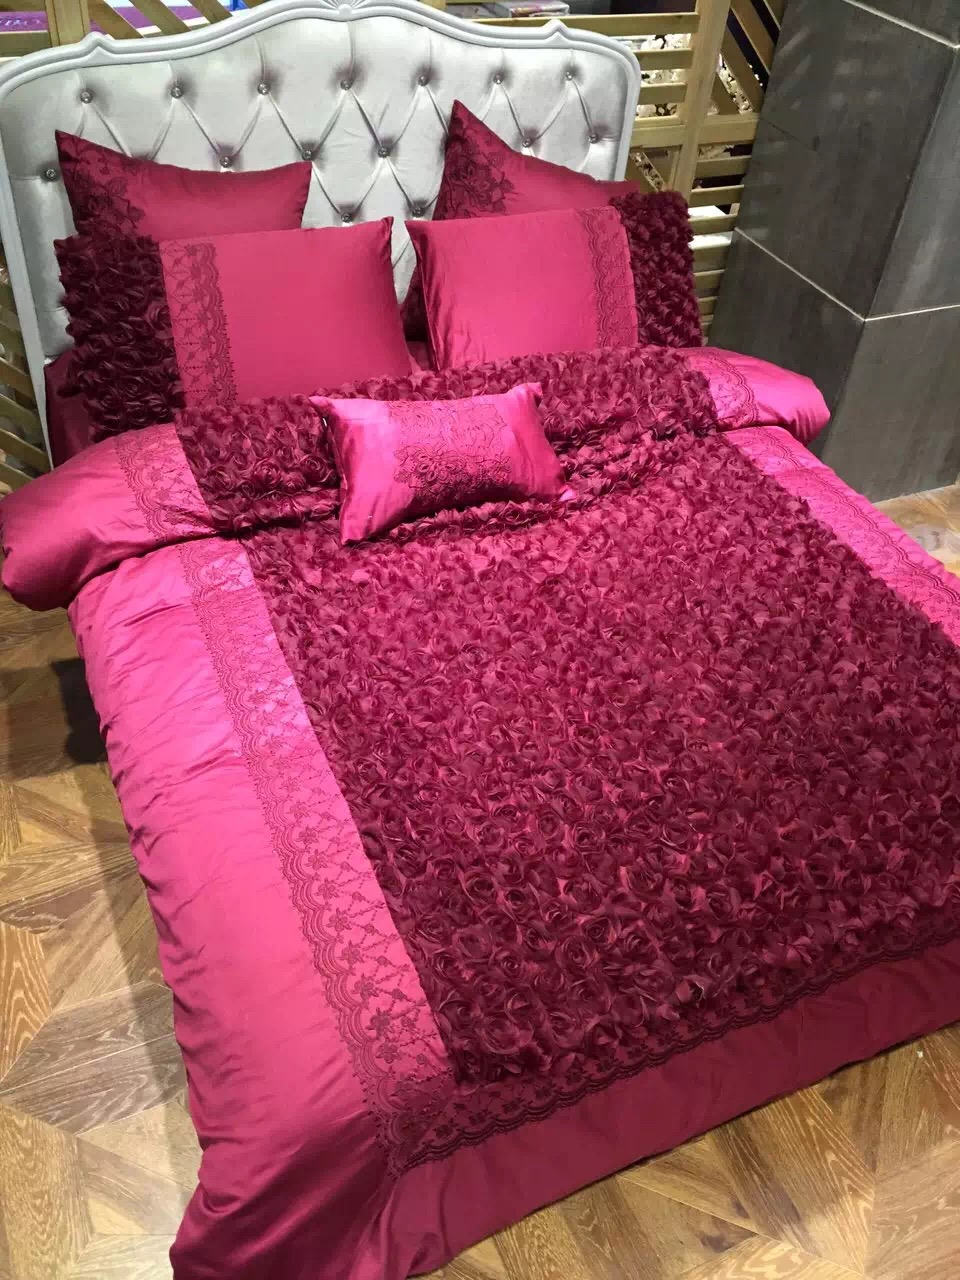 Wedding bed sheet set - 4pcs 100 Cotton Chinese Traditional Wedding Kit Wine Red Bedding Set King Size Roses Sewed